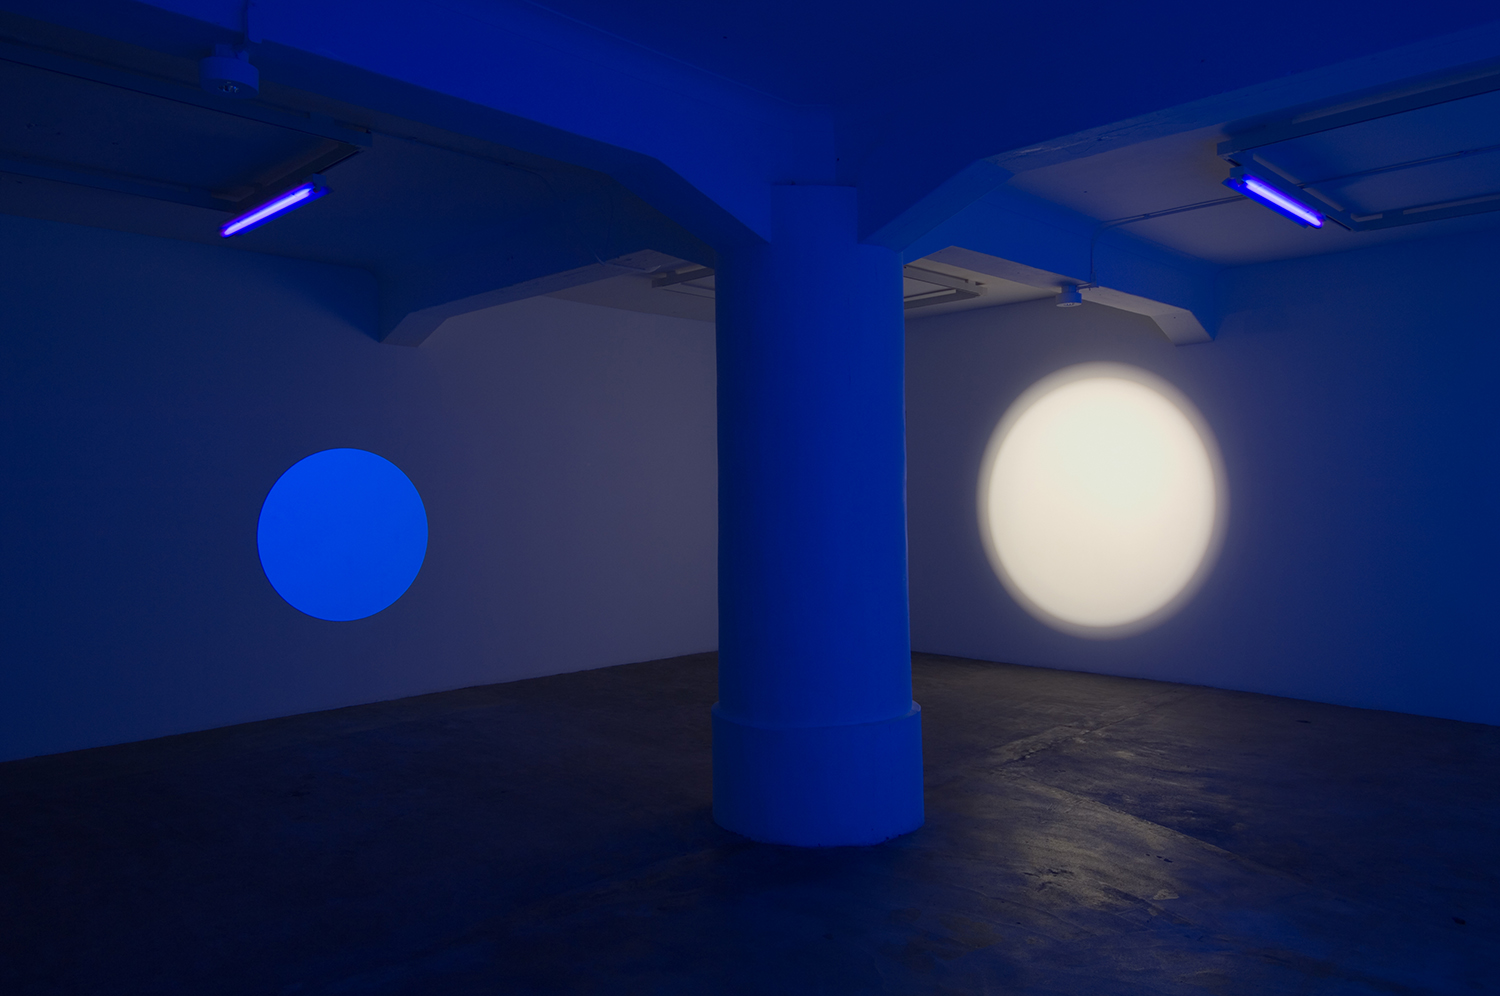 light work 2007#03<br>acrylic gauche, black light, diameter 120 cm, 2007 (left)<br>light work 2007#04<br>acrylic gauche, black light, diameter 215 cm, 2007(right)